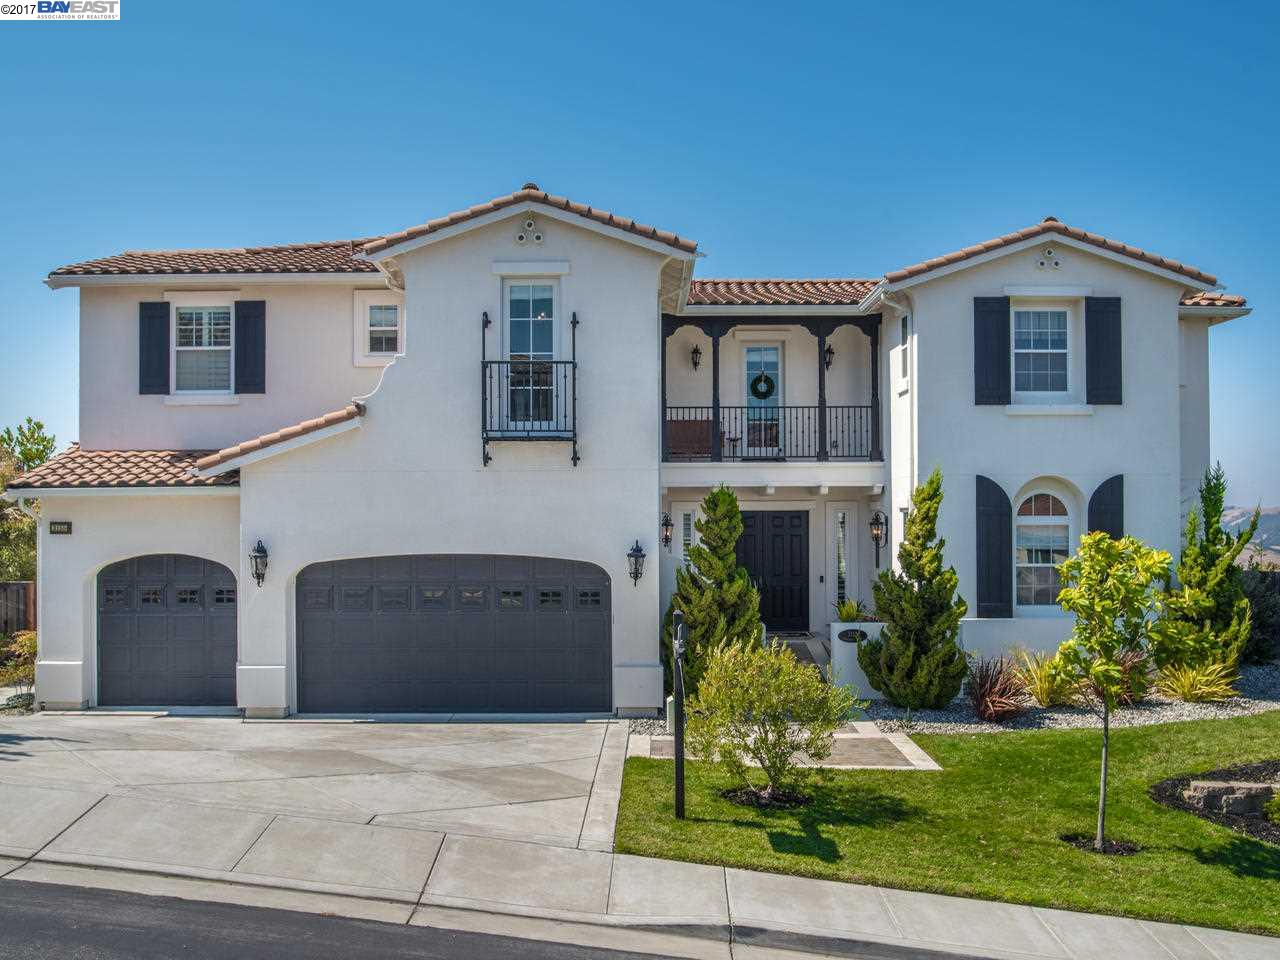 Single Family Home for Sale at 3155 Ashbourne Circle San Ramon, California 94583 United States